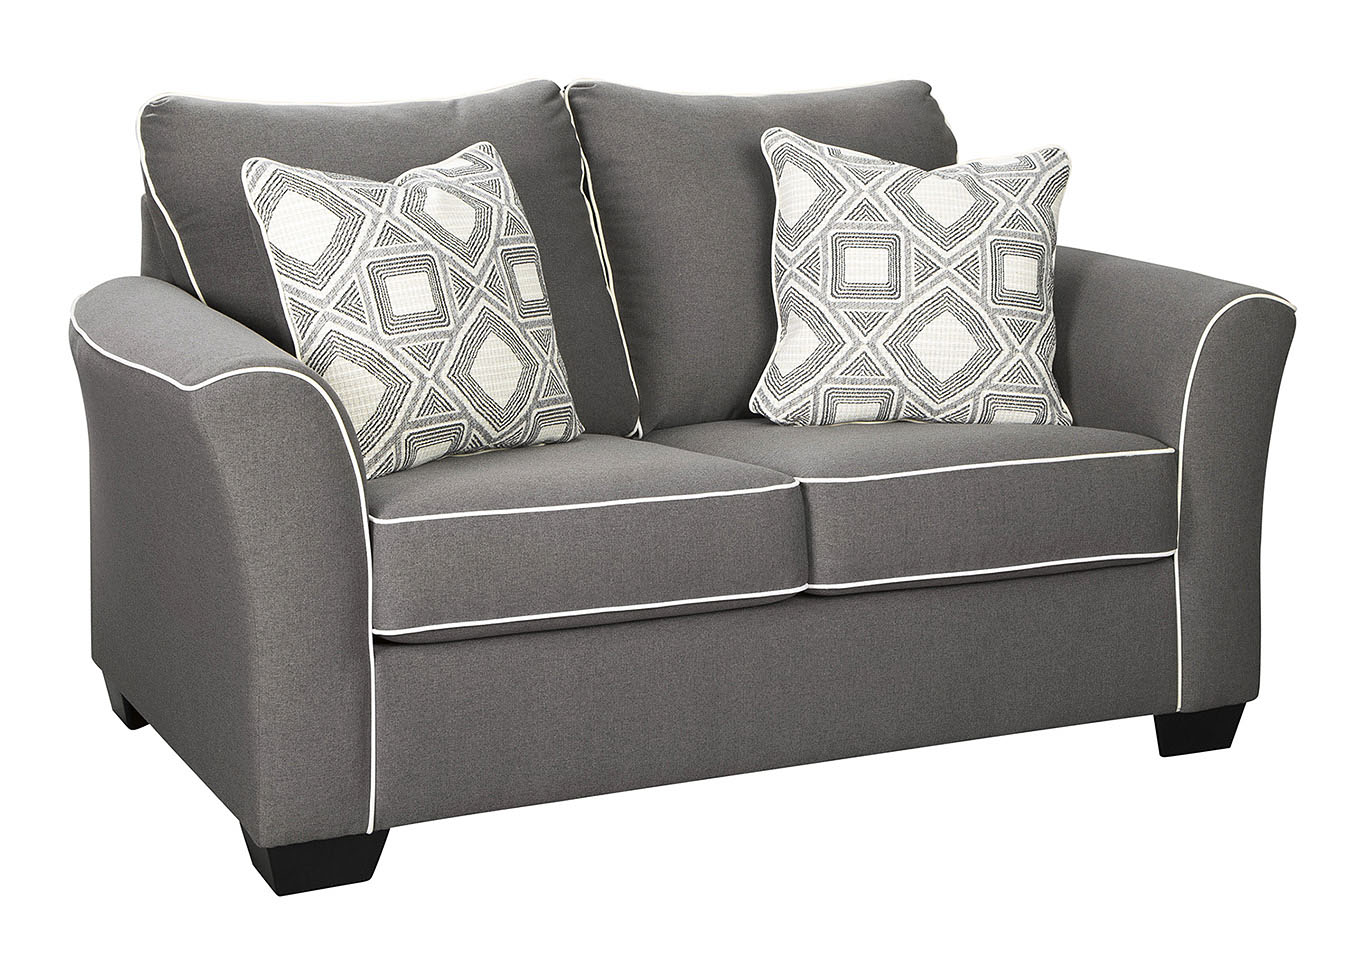 Domani Charcoal Loveseat,Signature Design By Ashley